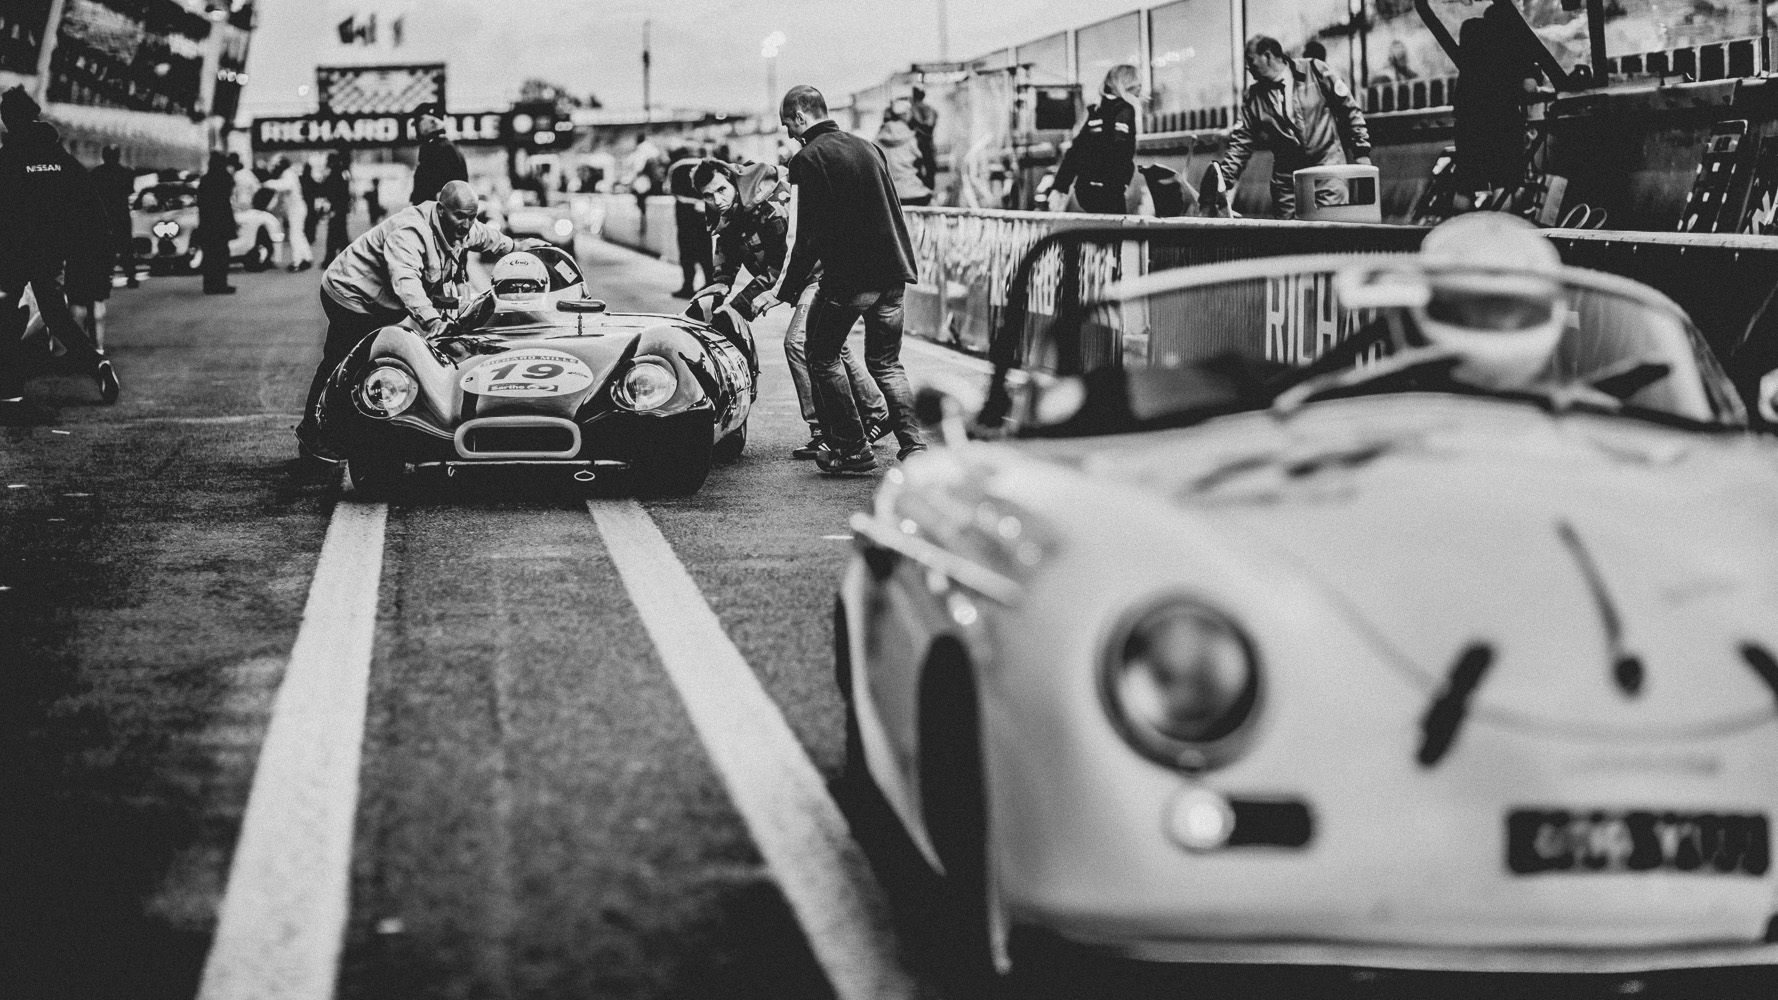 A photo from the 2012 Le Mans Classic.